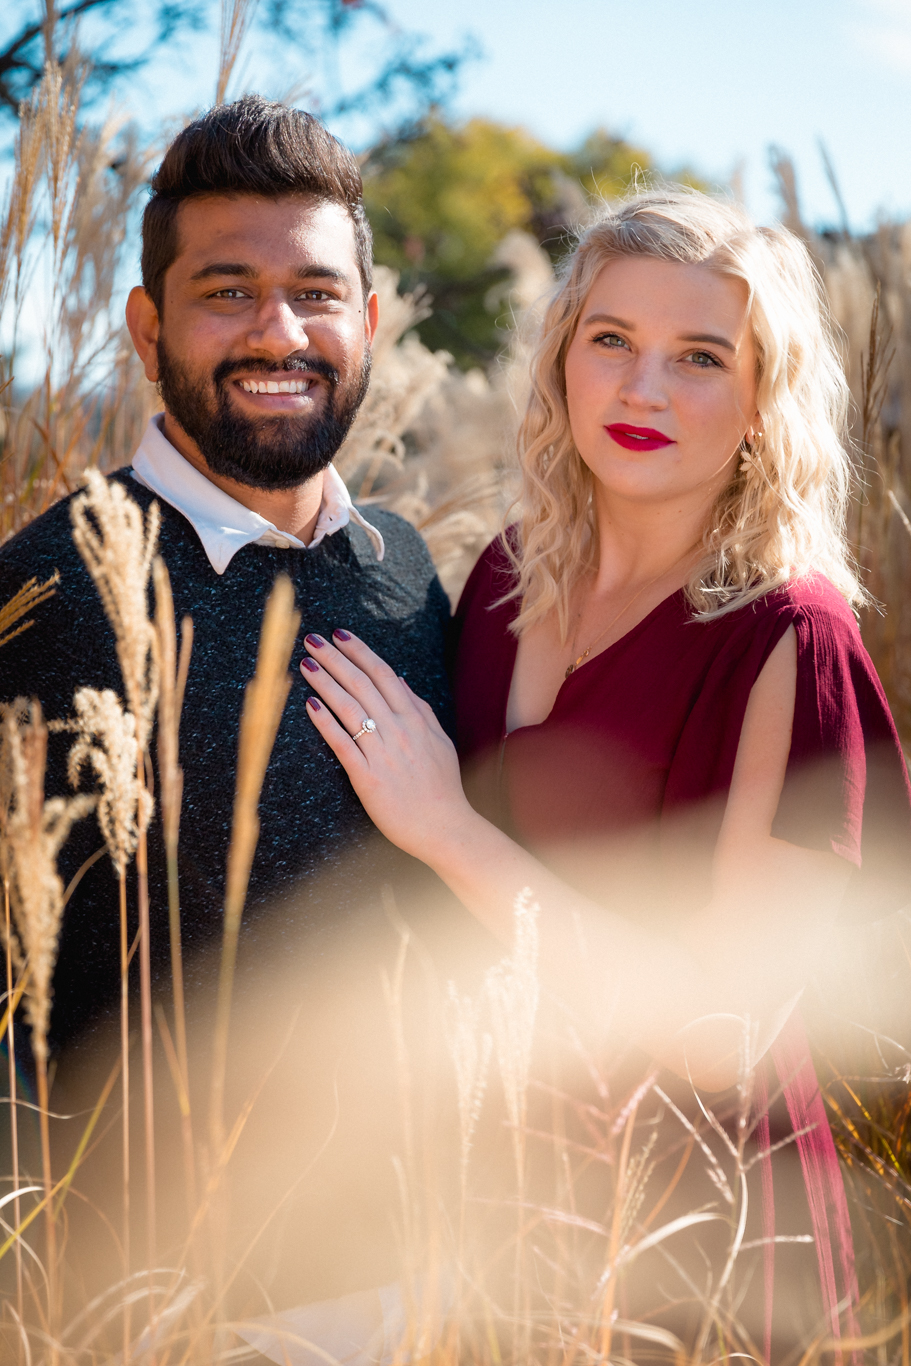 2018.12.03_Ashir-and-Emily-Engagement-Photography-@heymikefrancis-napa-valley-wedding-sacremento-california-heyfrancis-mikefrancis-7325.jpg